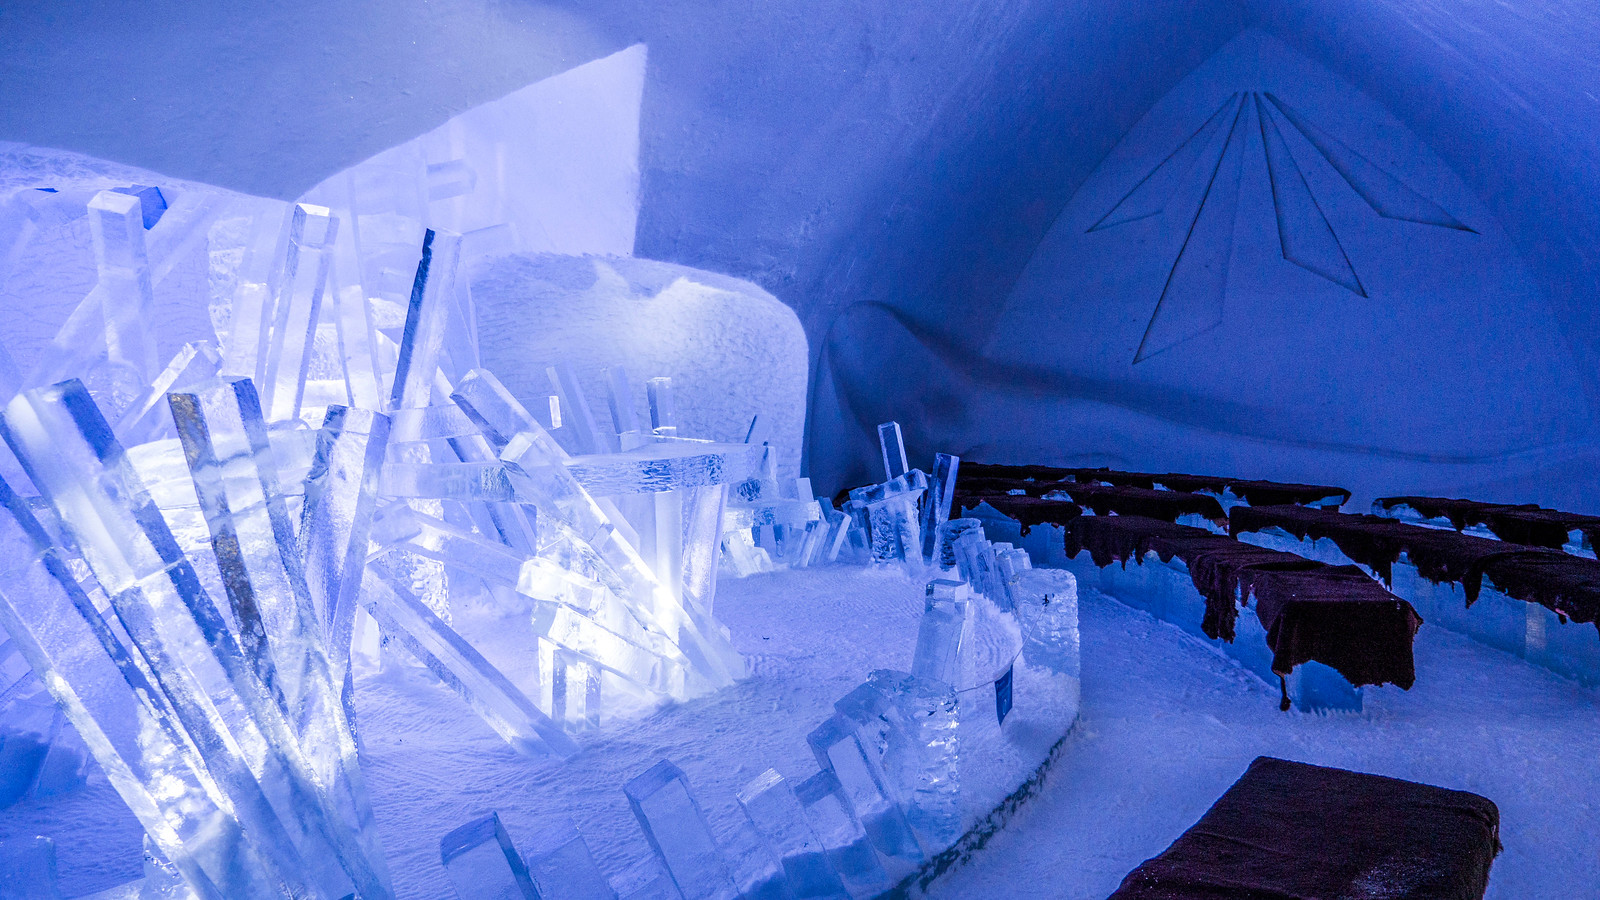 Ice Hotel Quebec: An Insider's Guide to Surviving the Night - Ice hotel wedding chapel